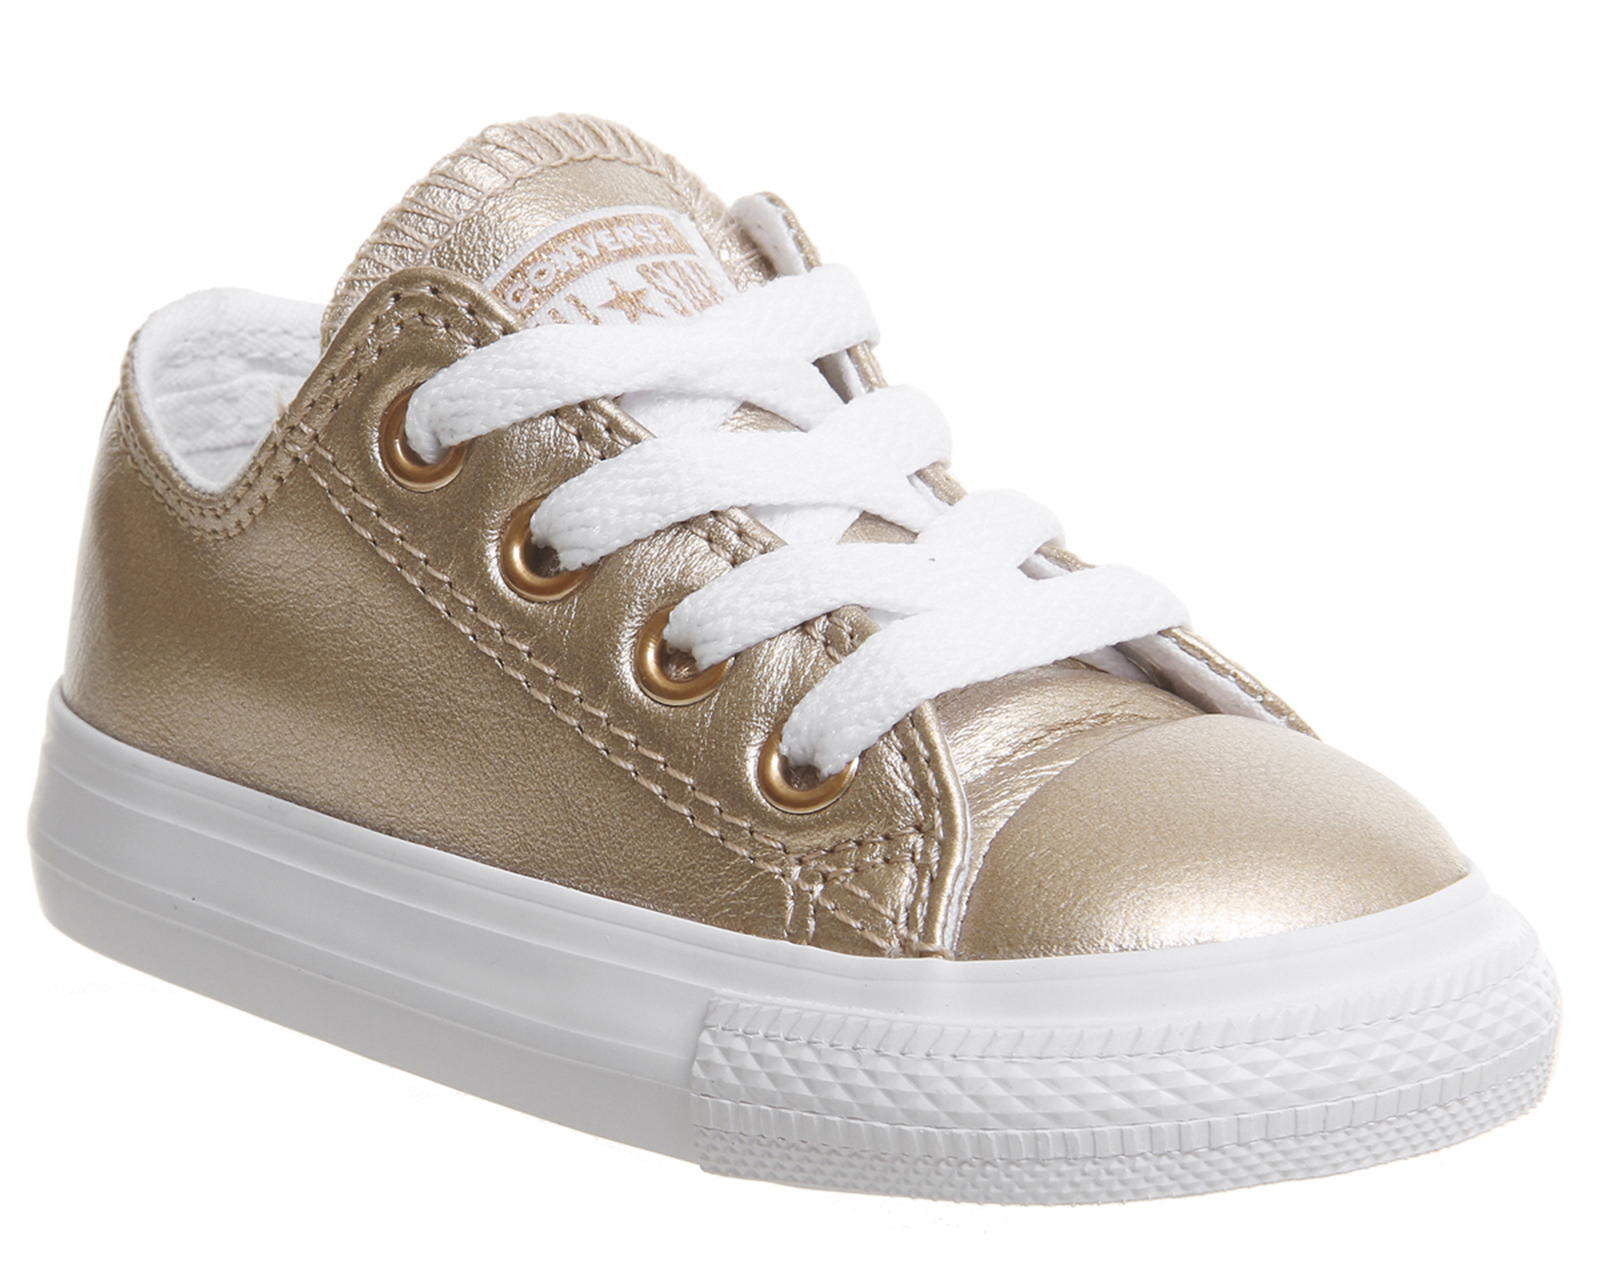 bf208cc192b Sentinel Kids Converse All Star Ox Leather Infant Rose Gold Metallic  Exclusive Kids